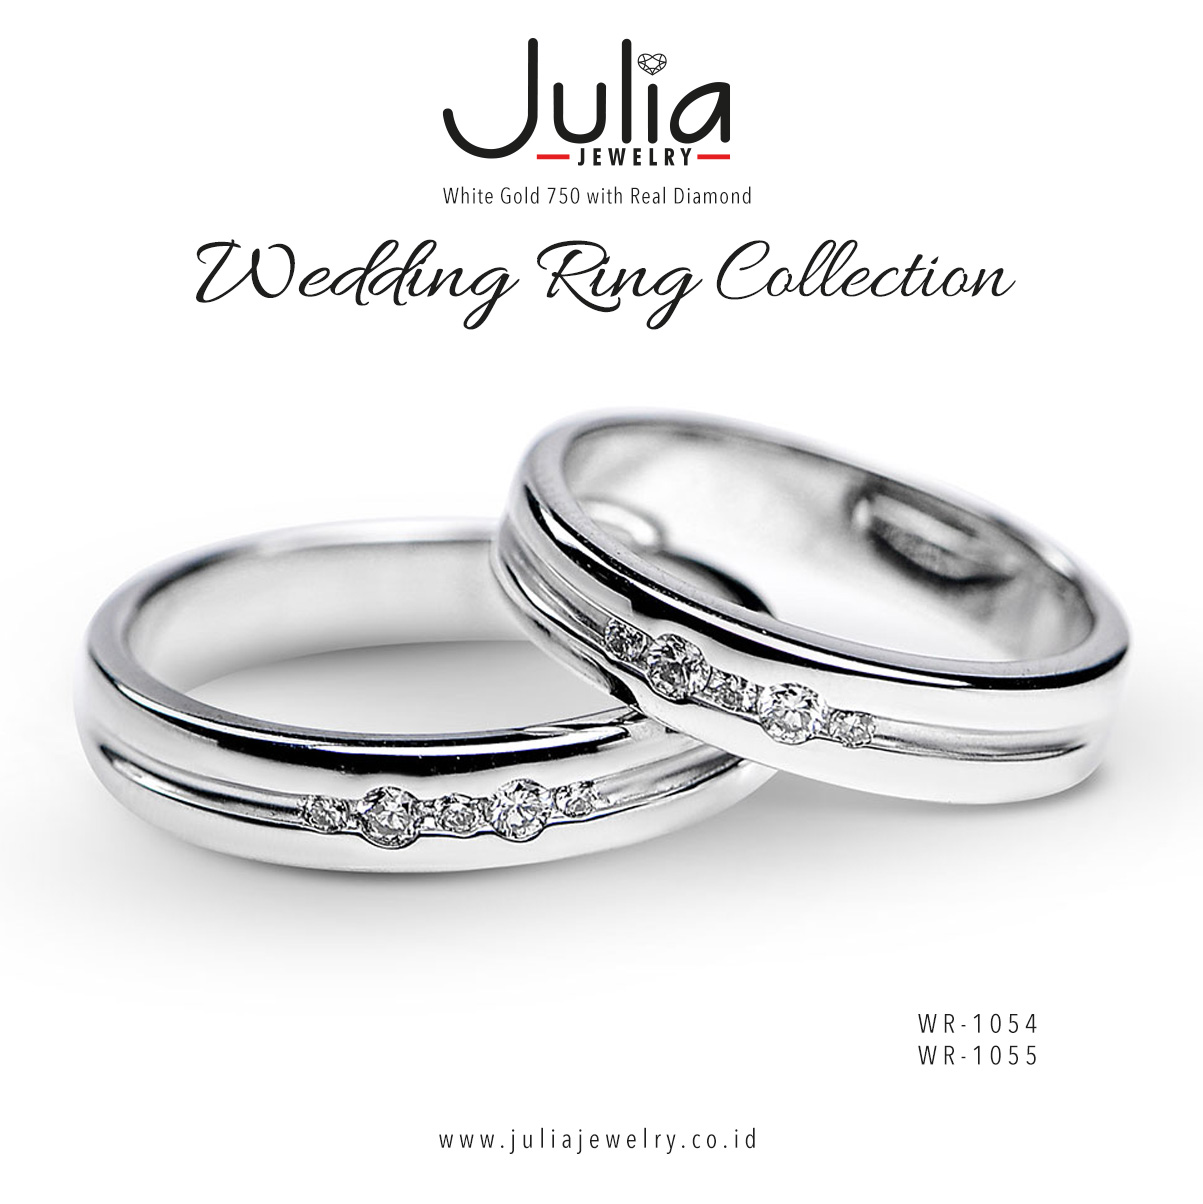 Wedding Ring Collection by Julia Jewelry Bridestorycom